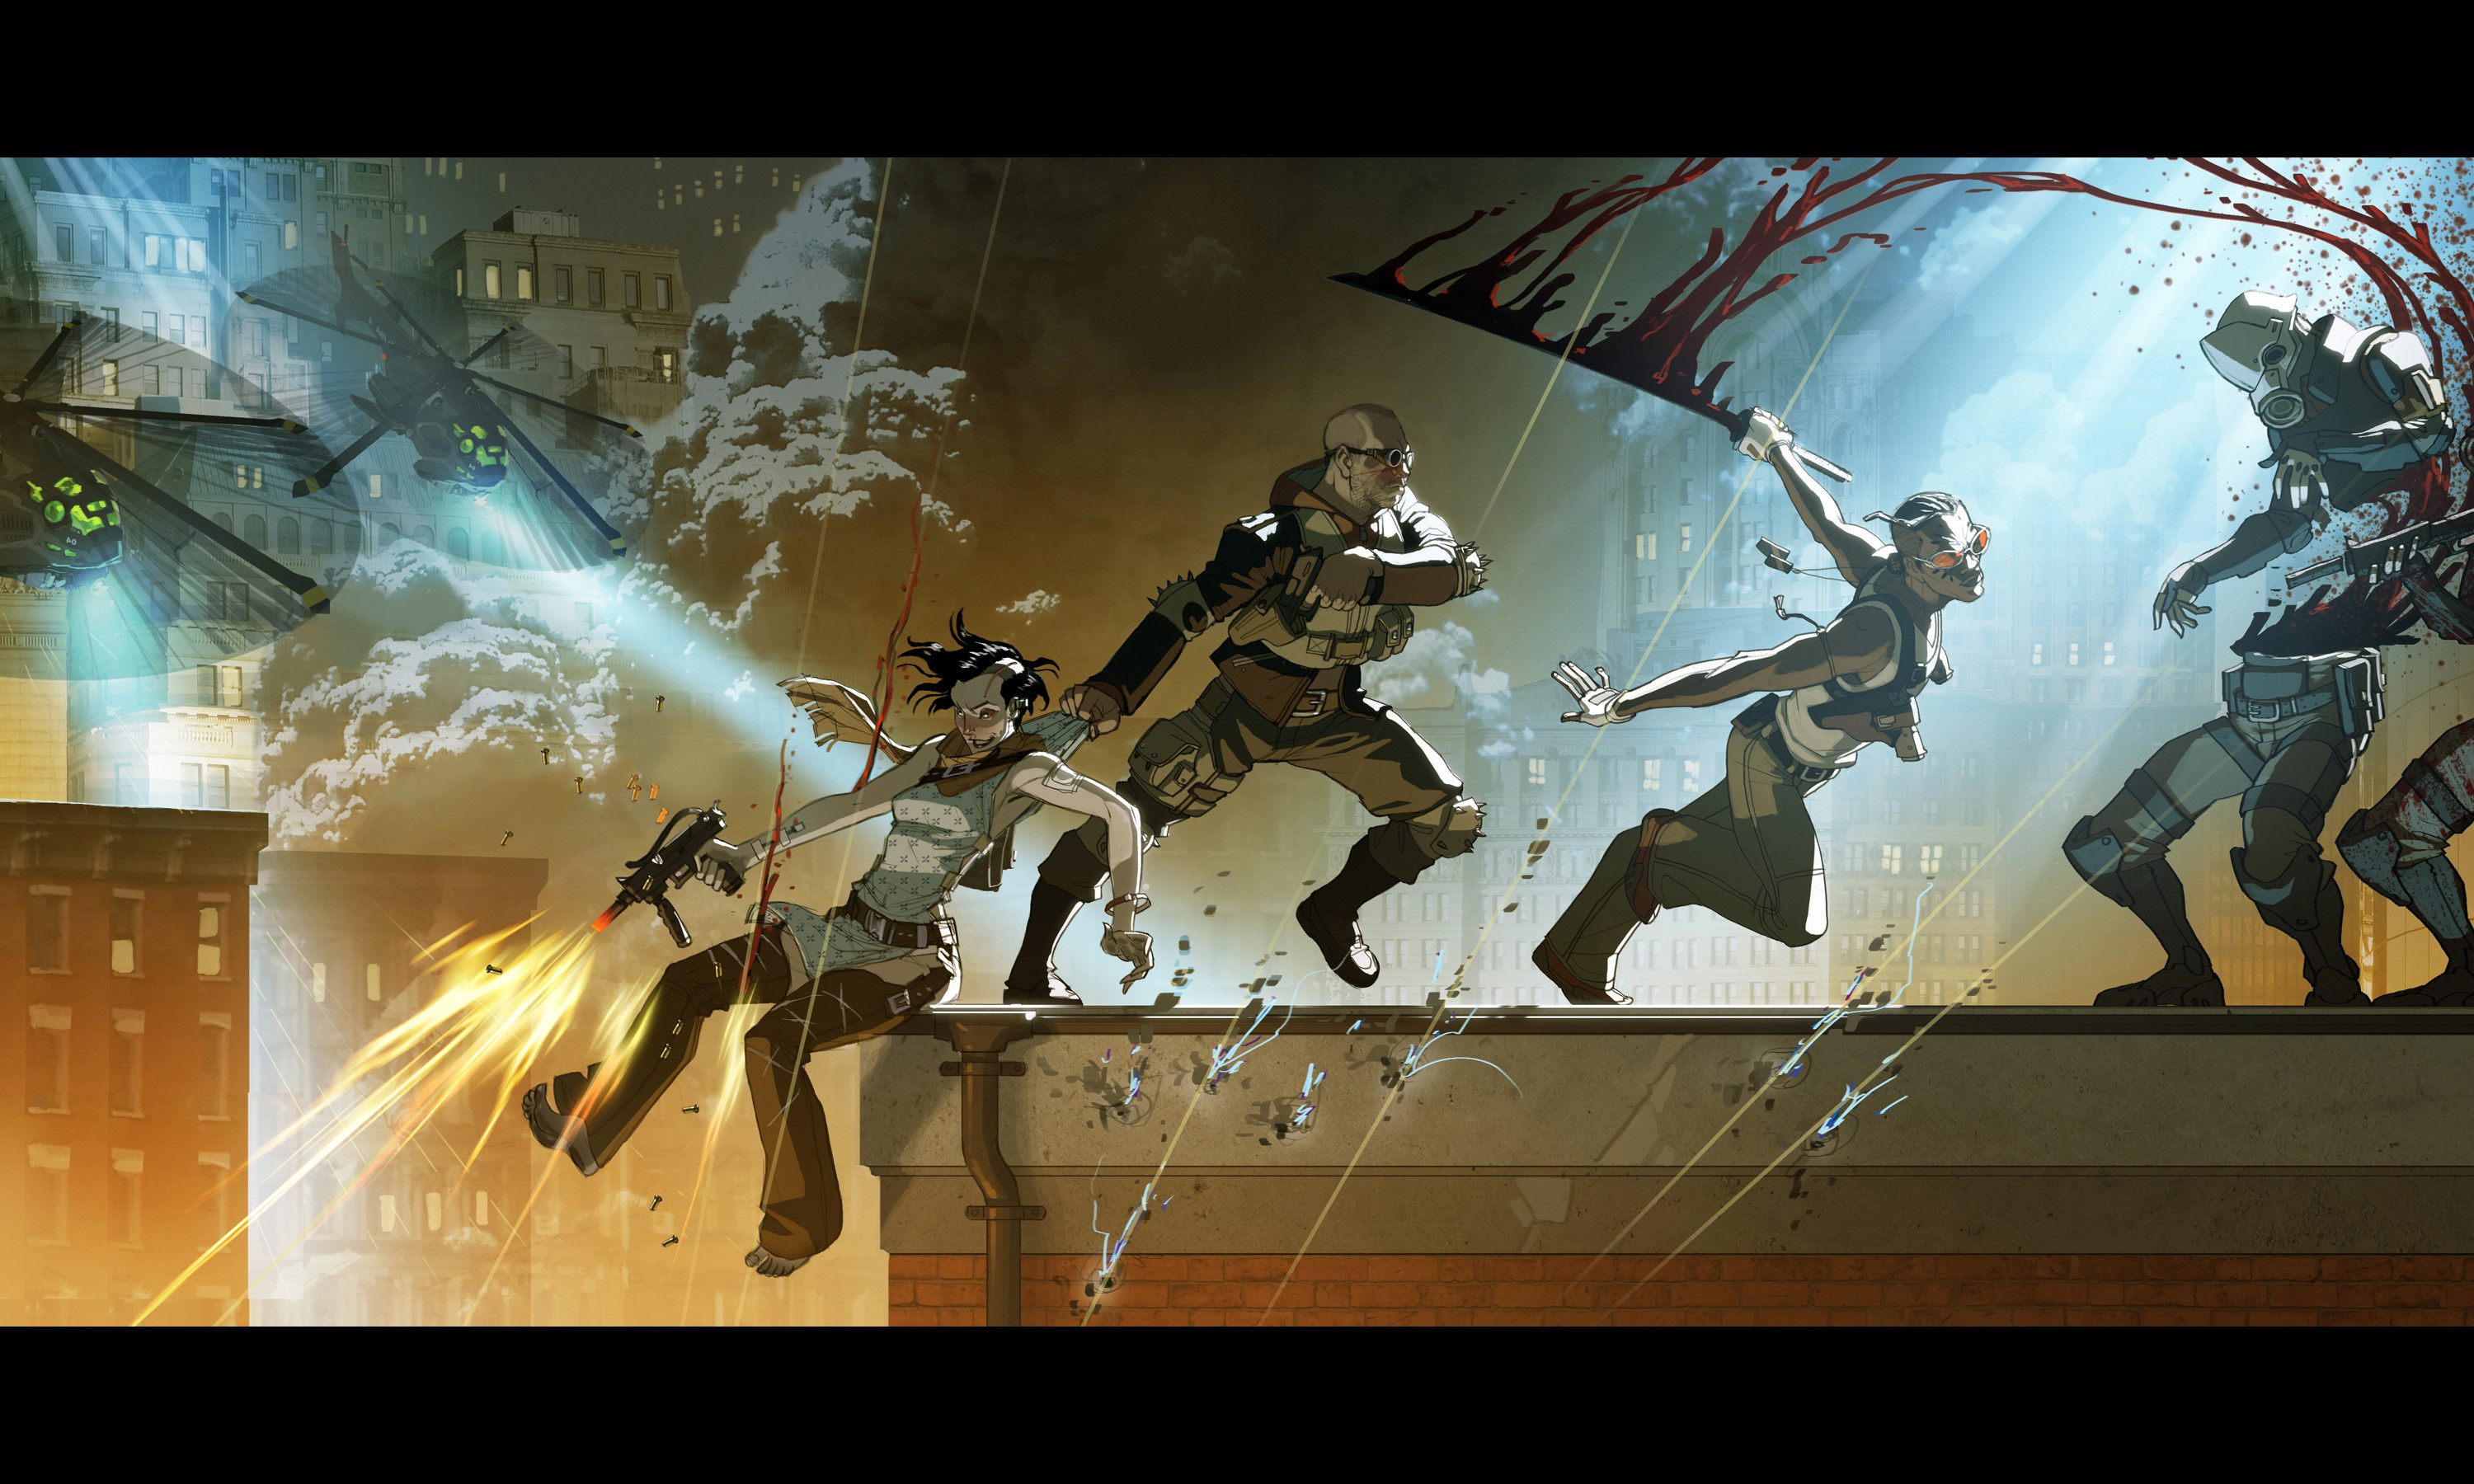 My favorite image from Revolver. Teamwork, action, fun.